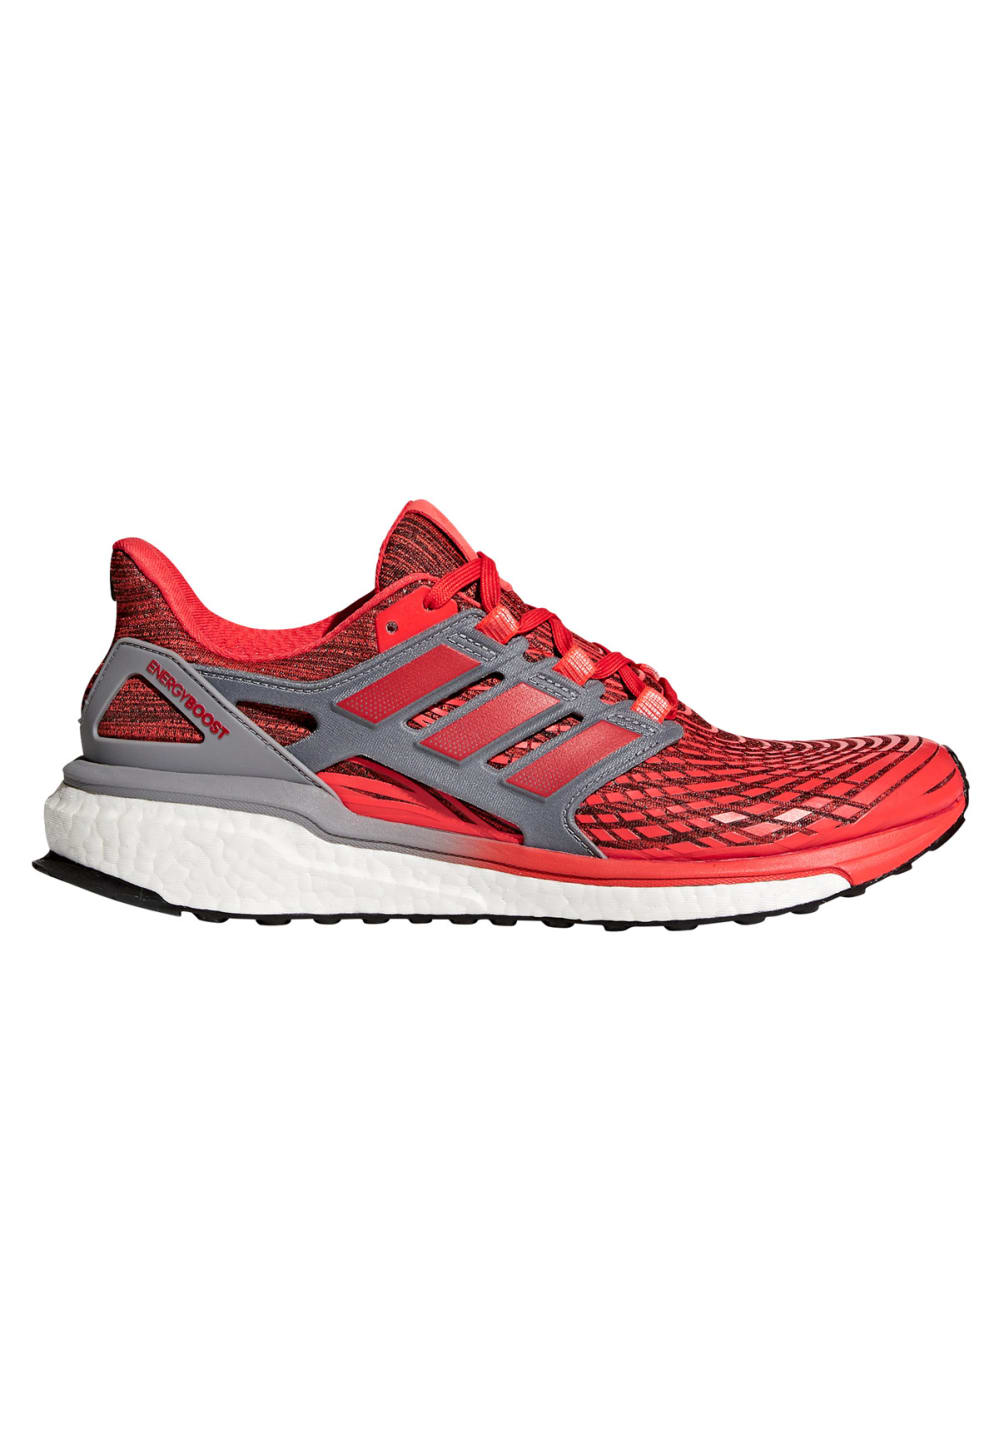 revendeur bddcd 03f90 adidas Energy Boost - Running shoes for Men - Red